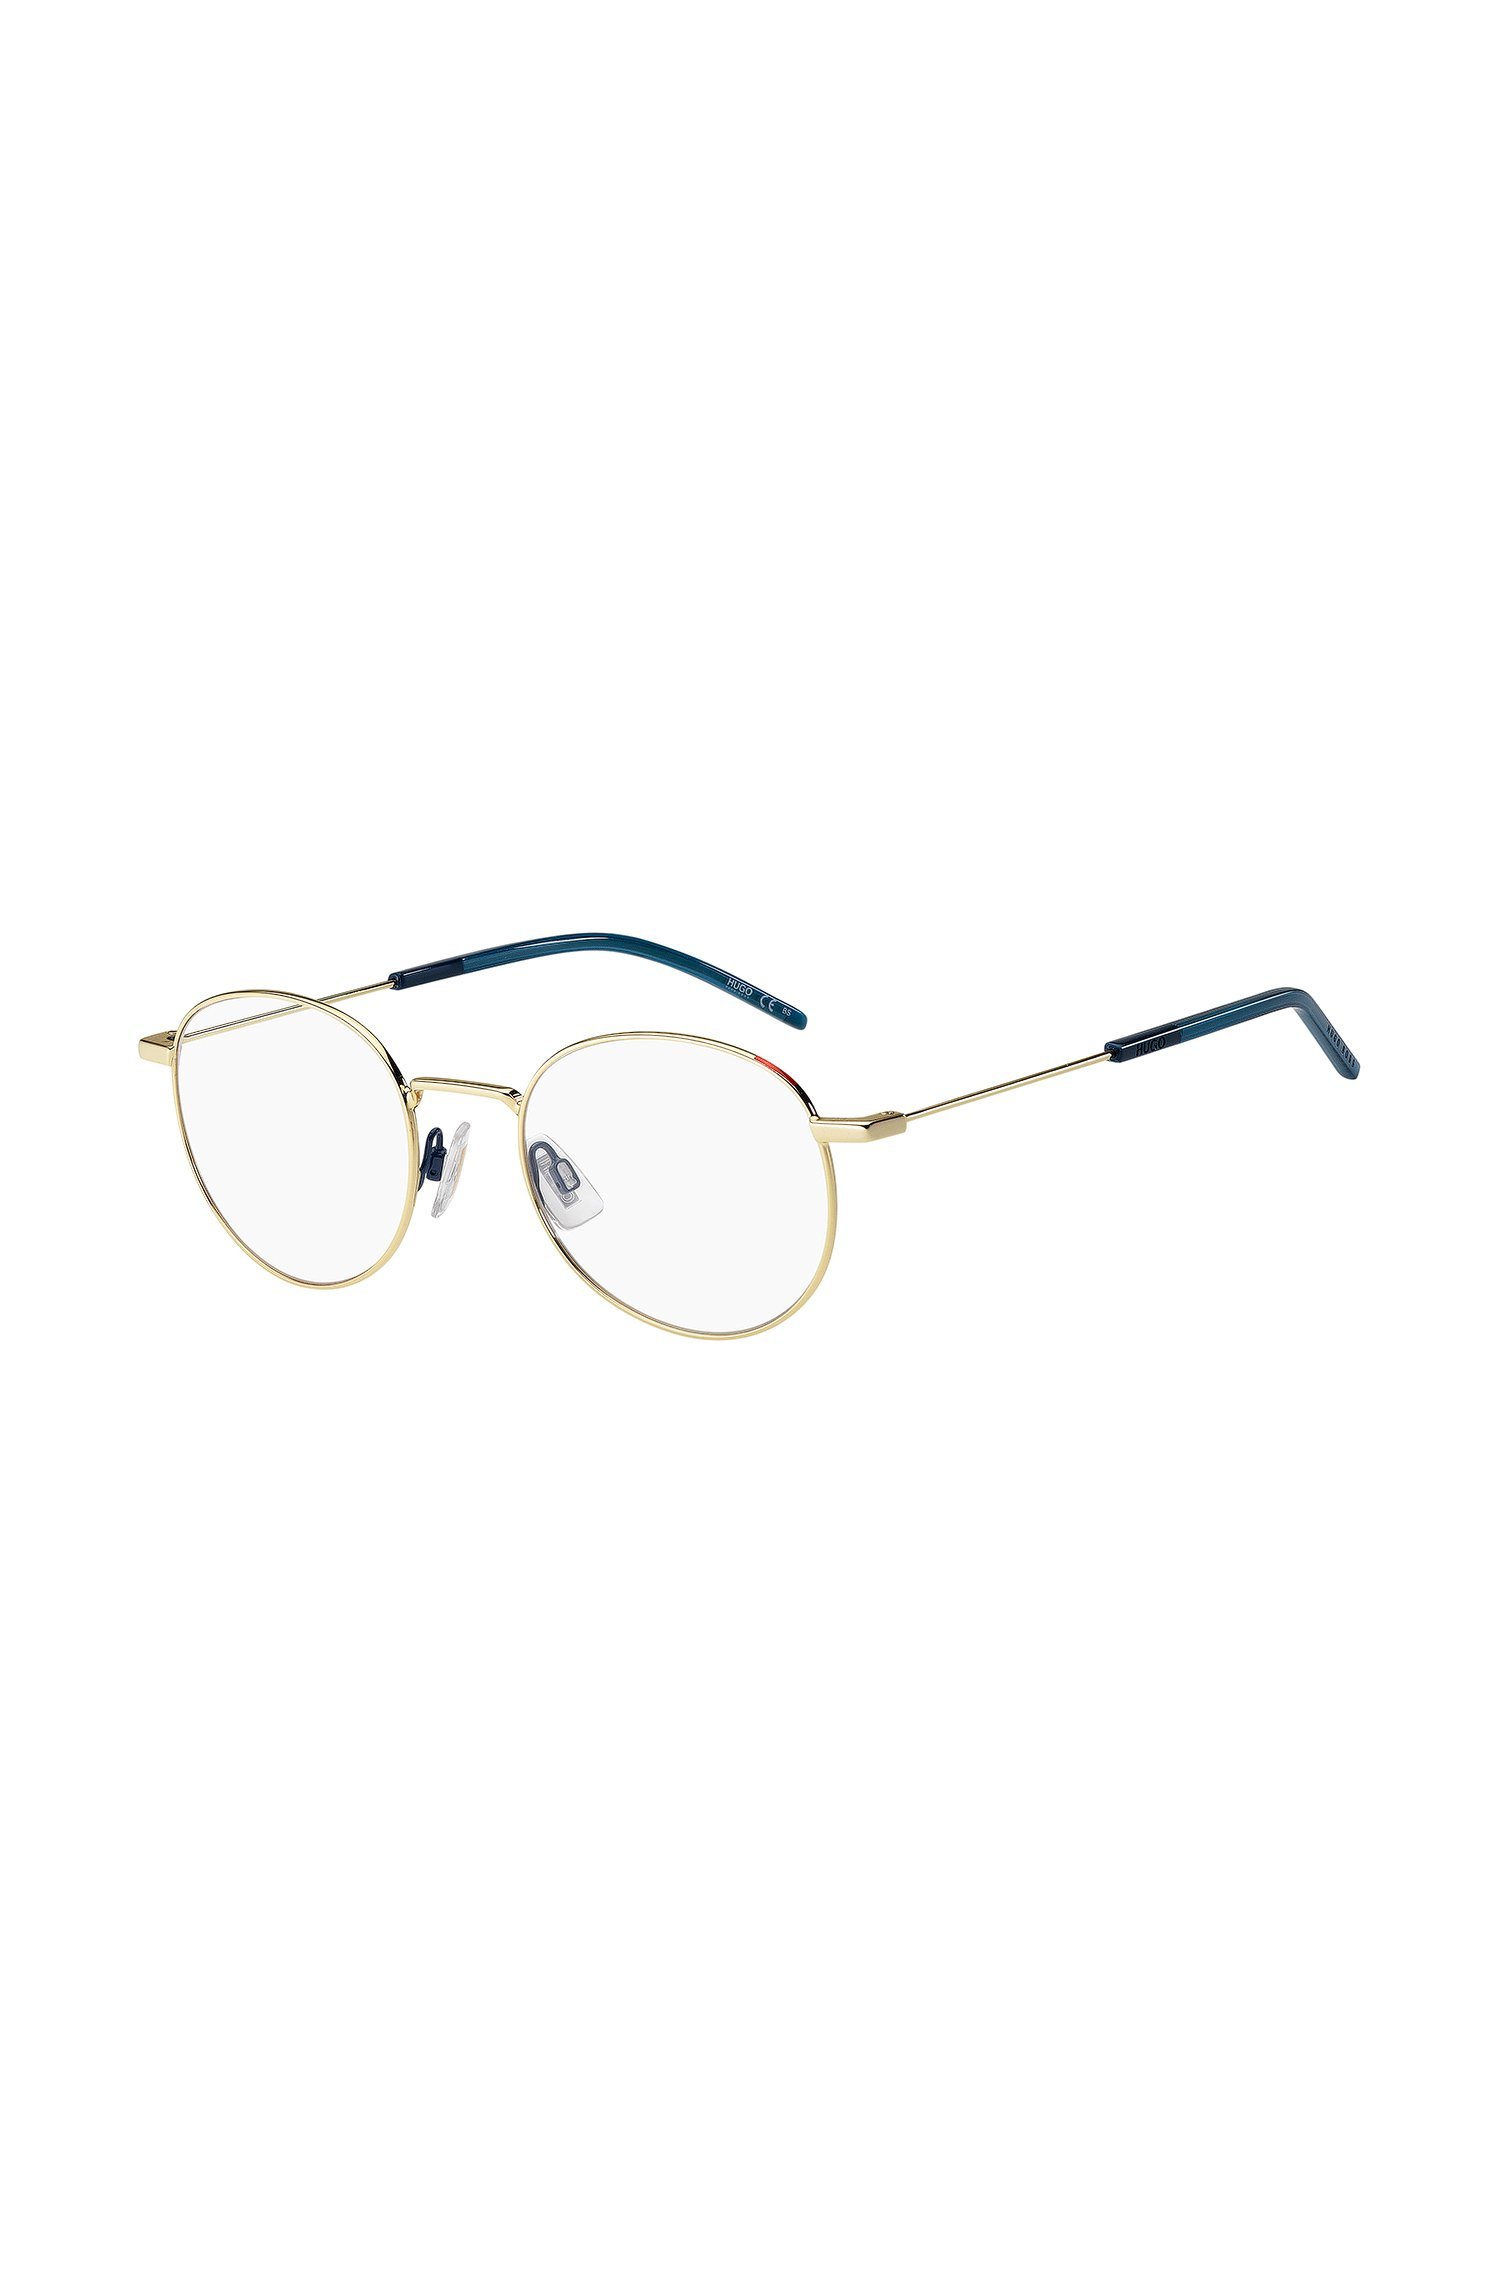 Optical frames with gold and blue finishes, Assorted-Pre-Pack